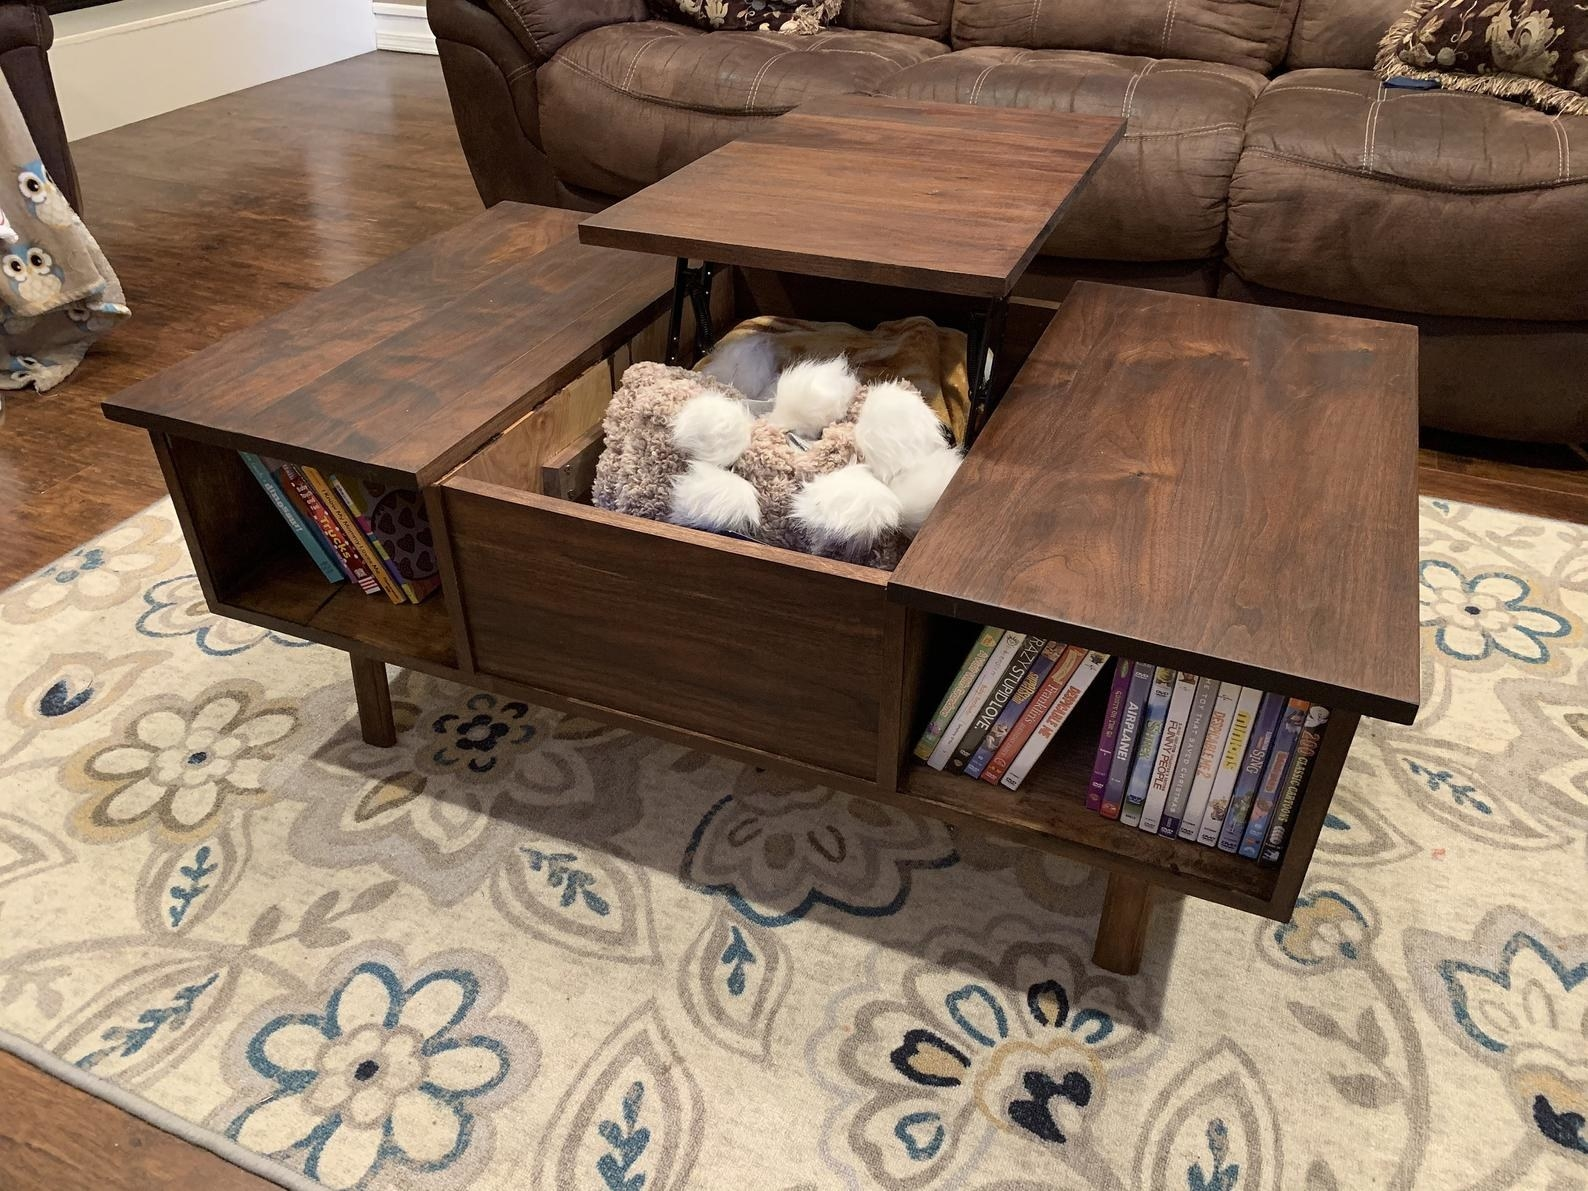 in a living room, the lift-top desk is open to reveal childrens' toys